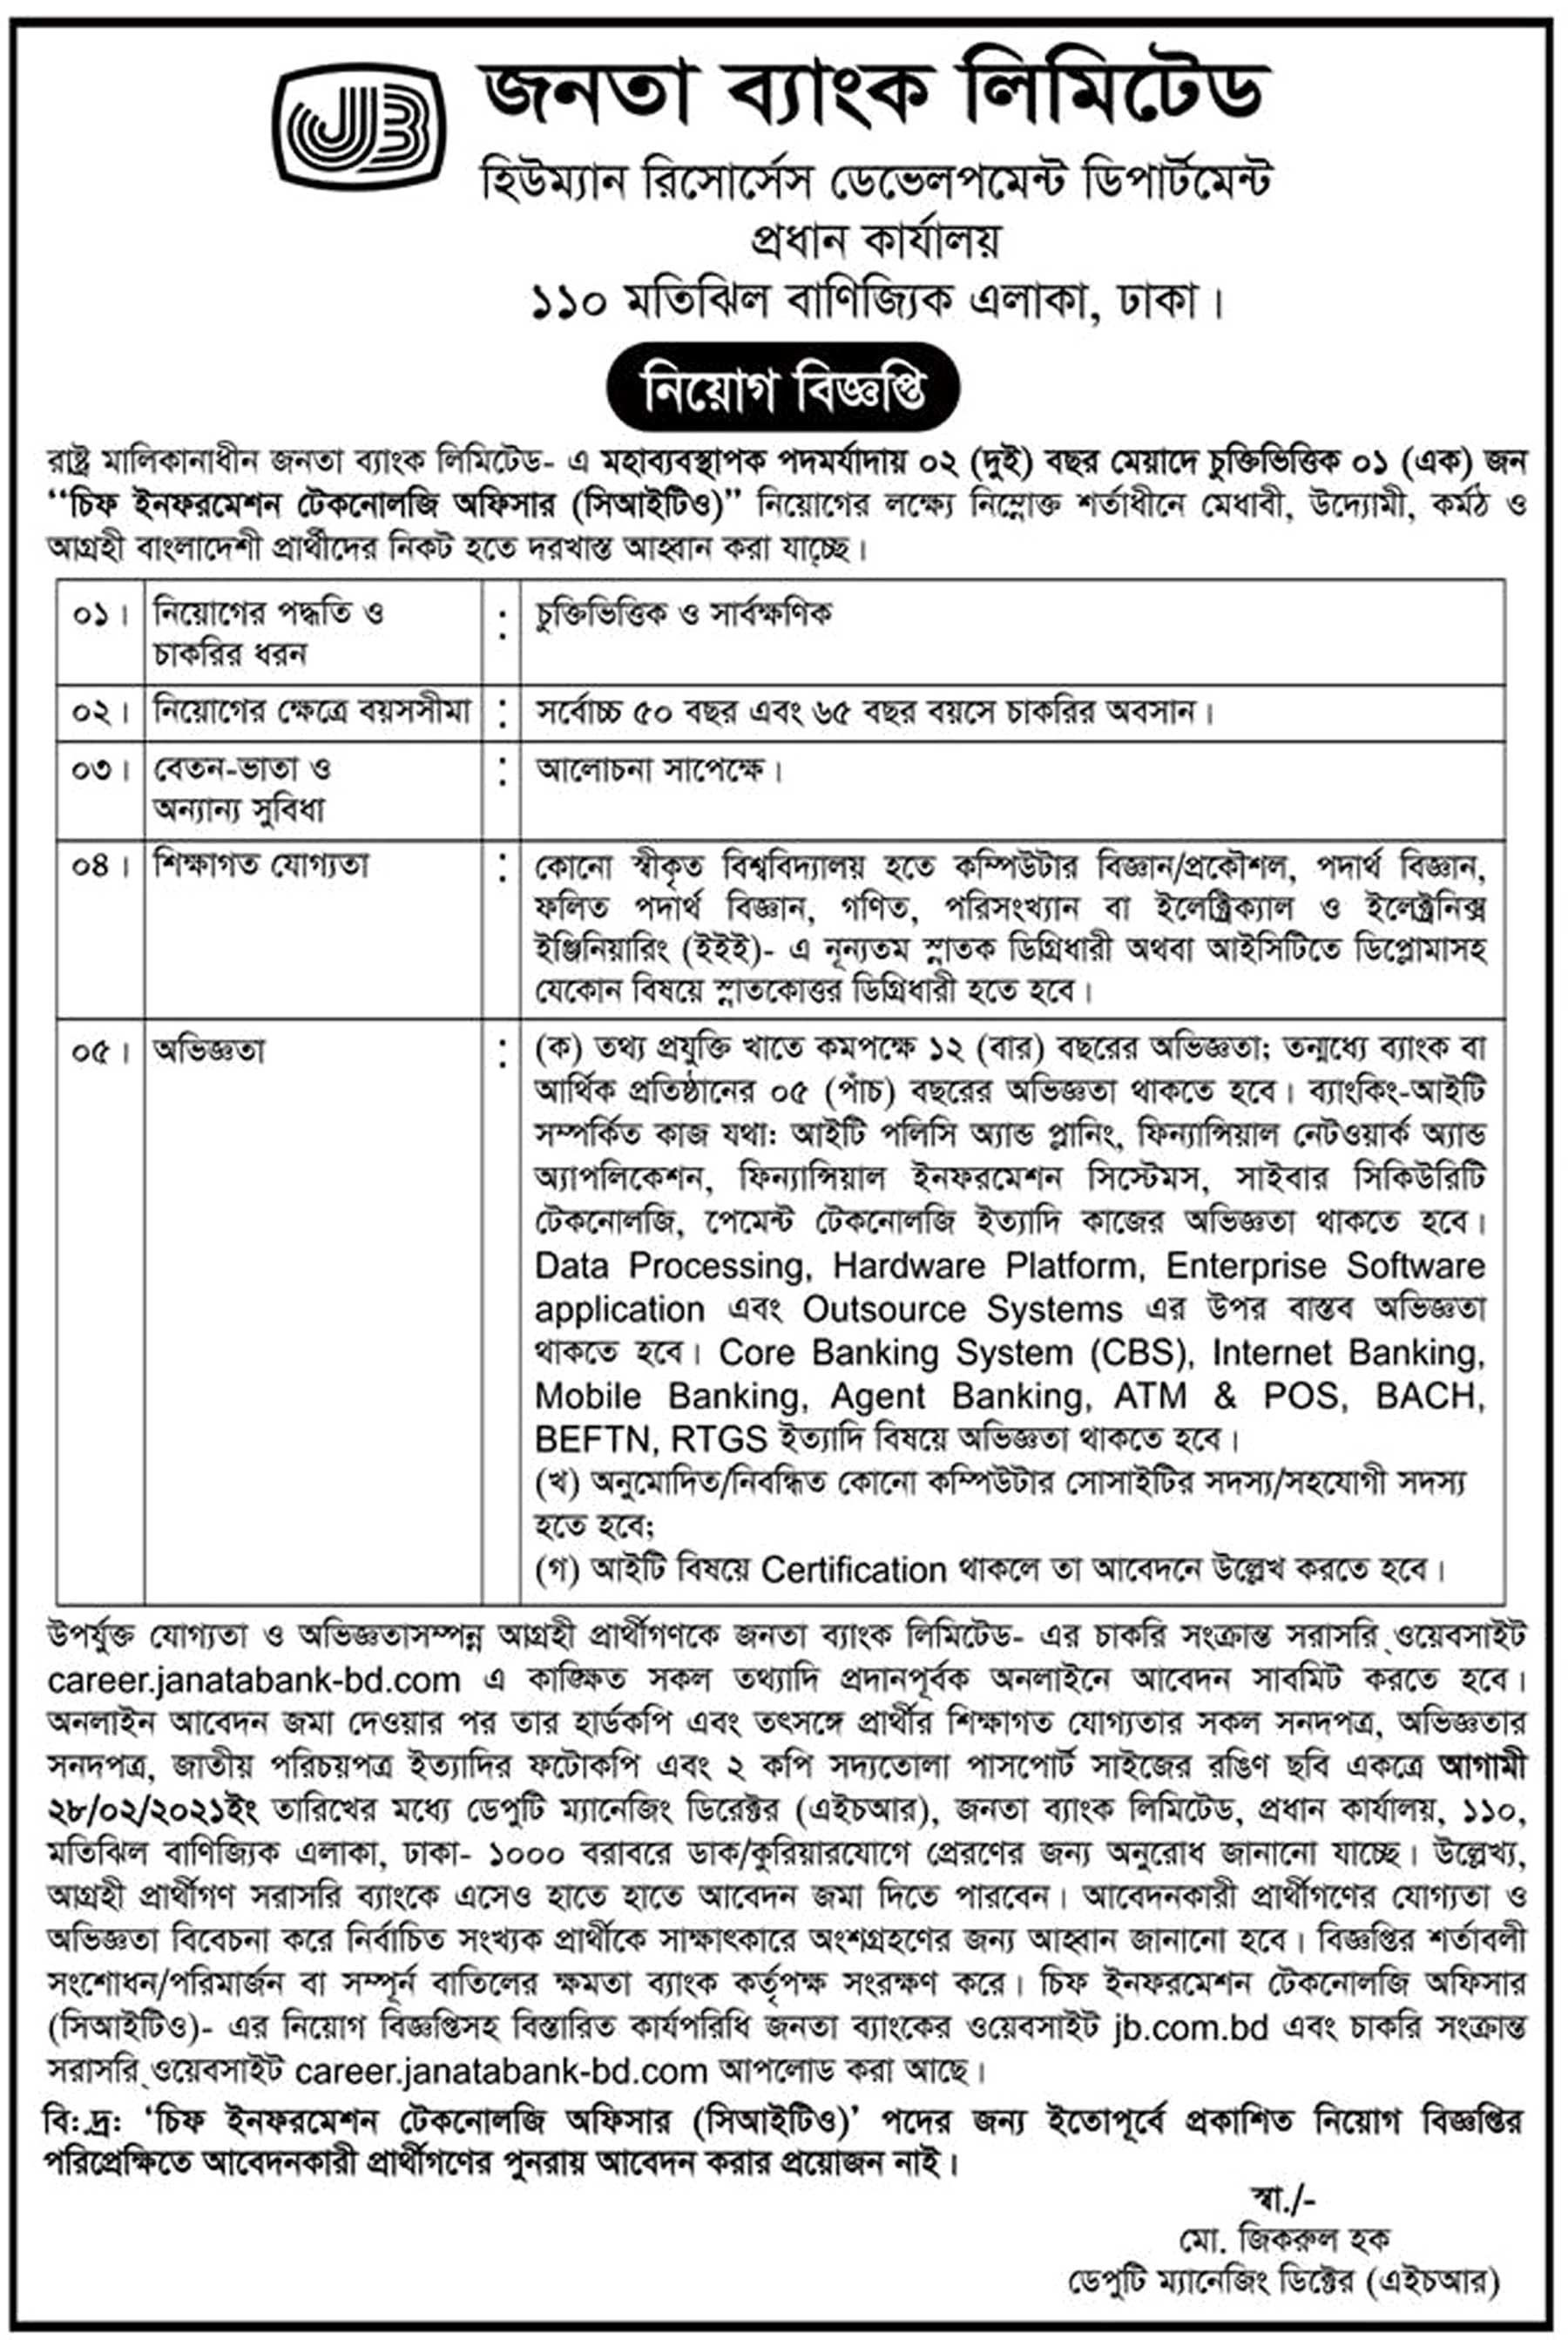 Janata Bank Limited Job Circular 2021